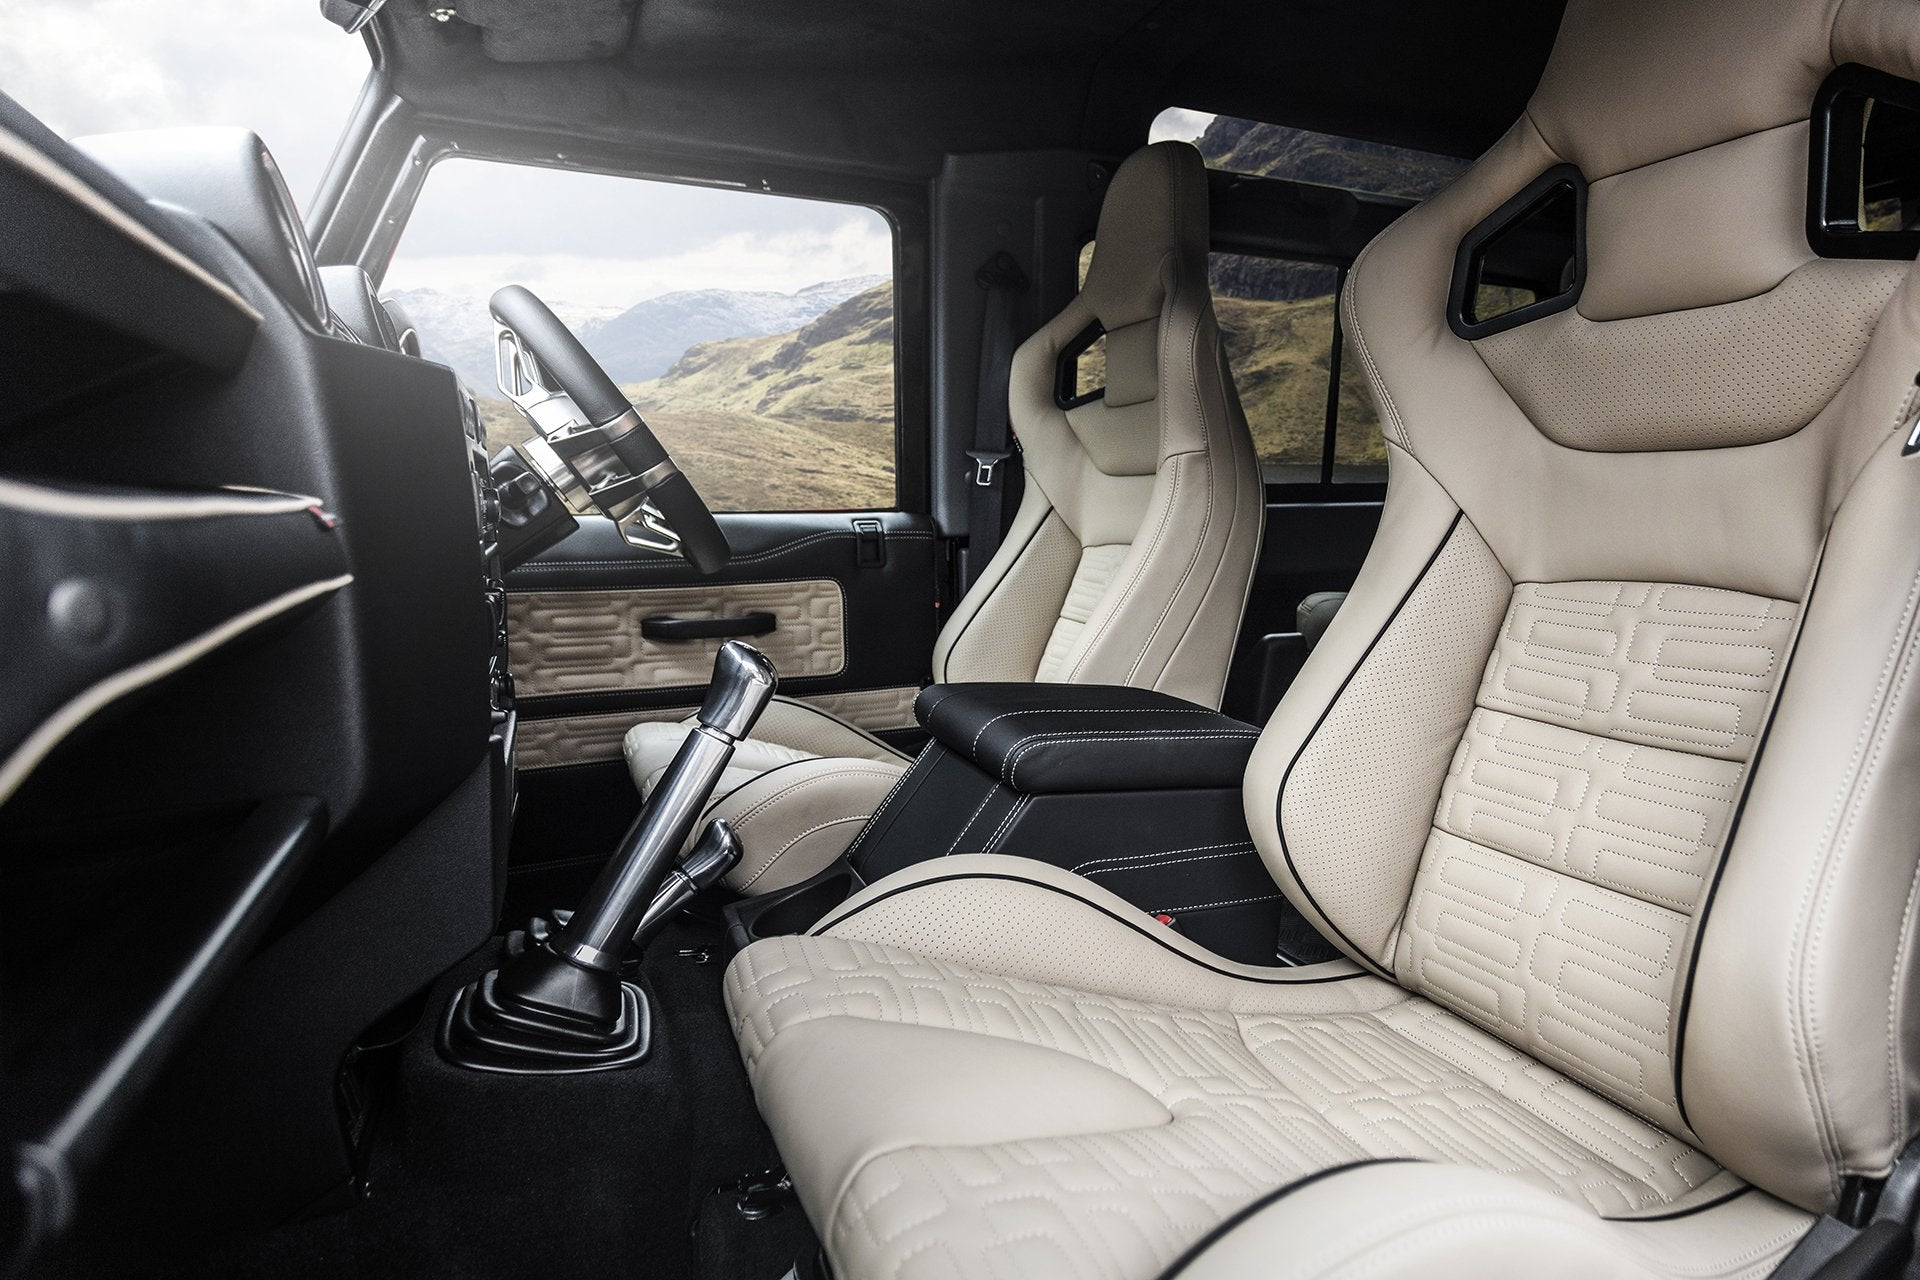 Land Rover Defender 90 (1991-2016) Leather Interior by Chelsea Truck Company - Image 1540